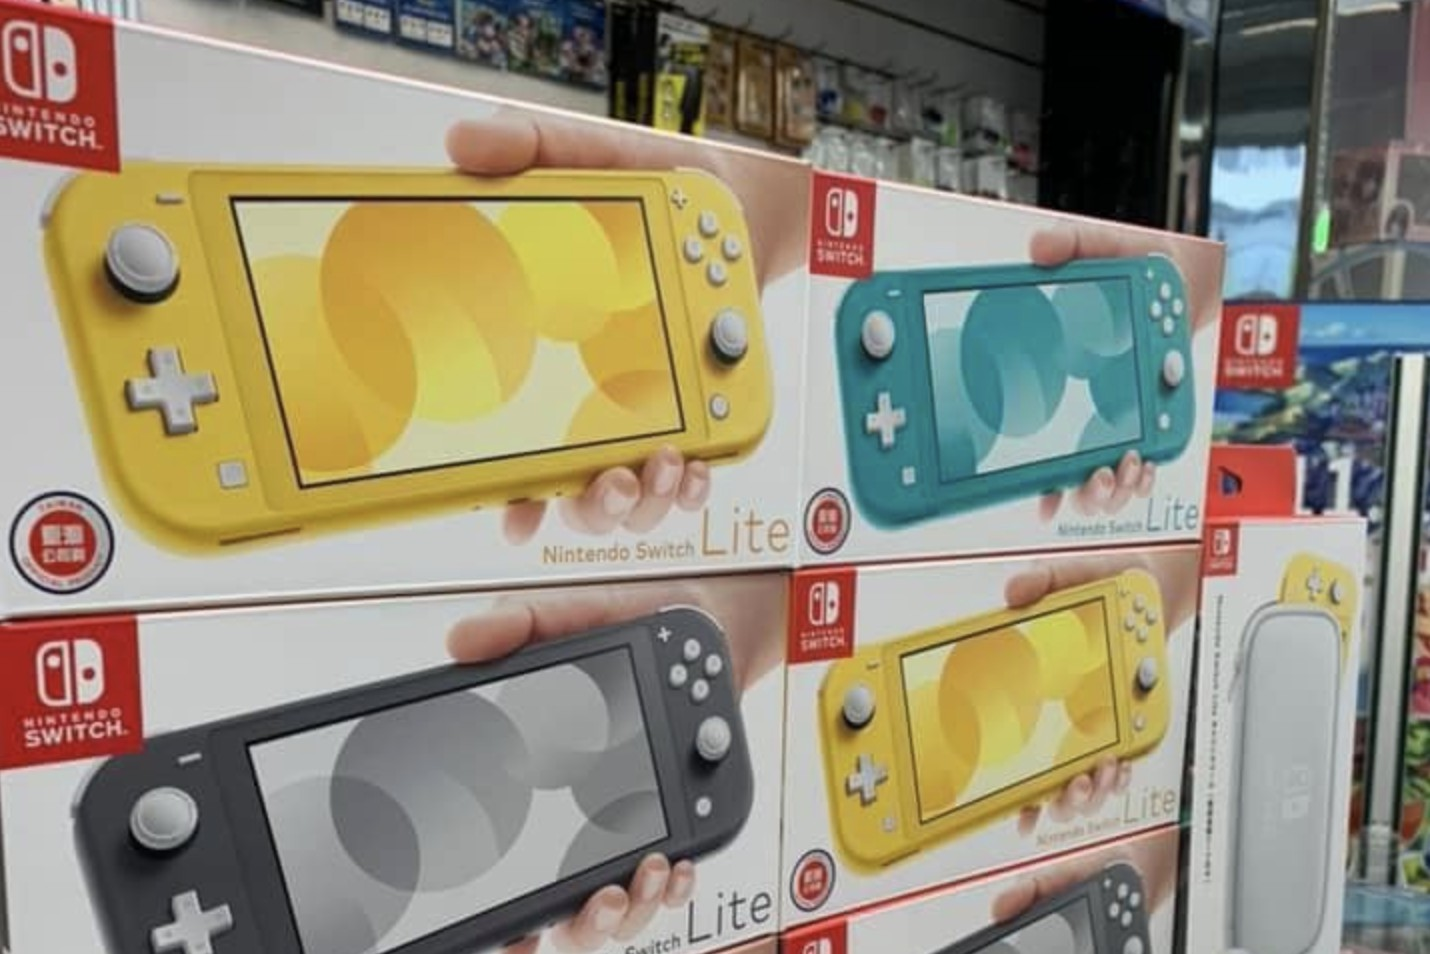 Nintendo Switch Lite Boxes Appear In Taiwan Nintendosoup